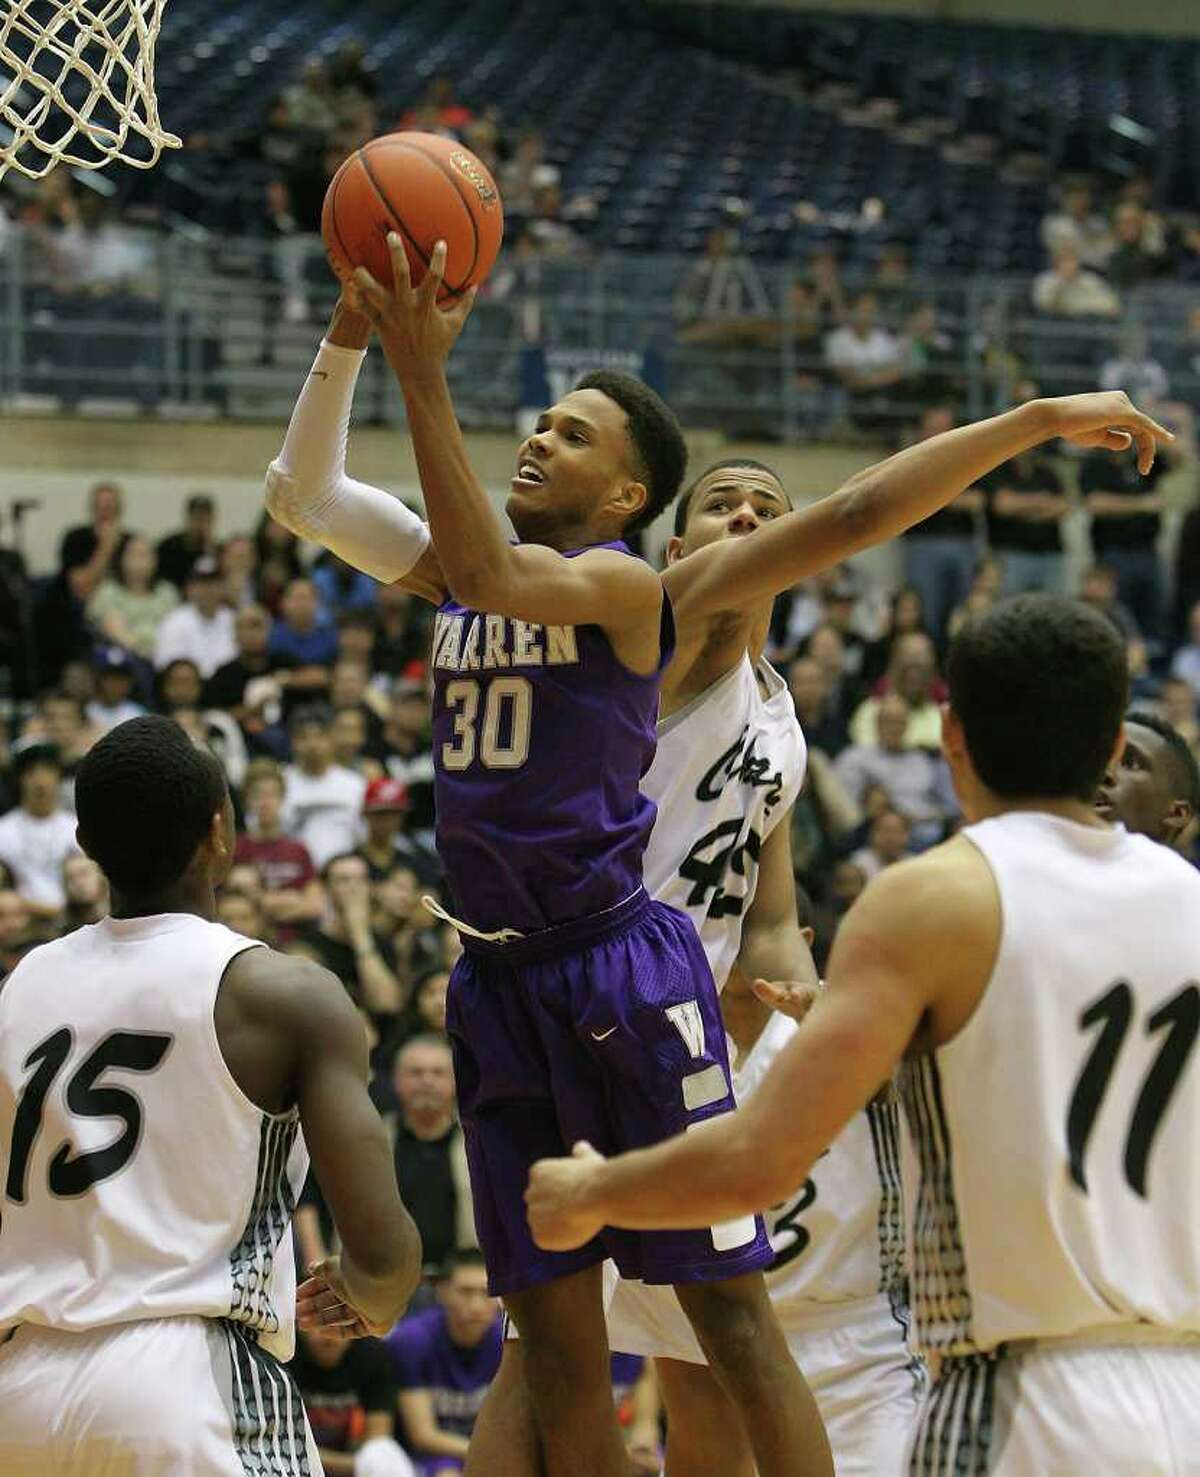 Warren's Jerell Ellis (30) grabs a rebound against Clark's Travis Matthews (15) and Shawn Gulley (45) in the Region IV-5A boys basketball finals at UTSA on Saturday, Mar. 3, 2012. Warren defeated Clark, 65-56, to earn a trip to the state tournament.